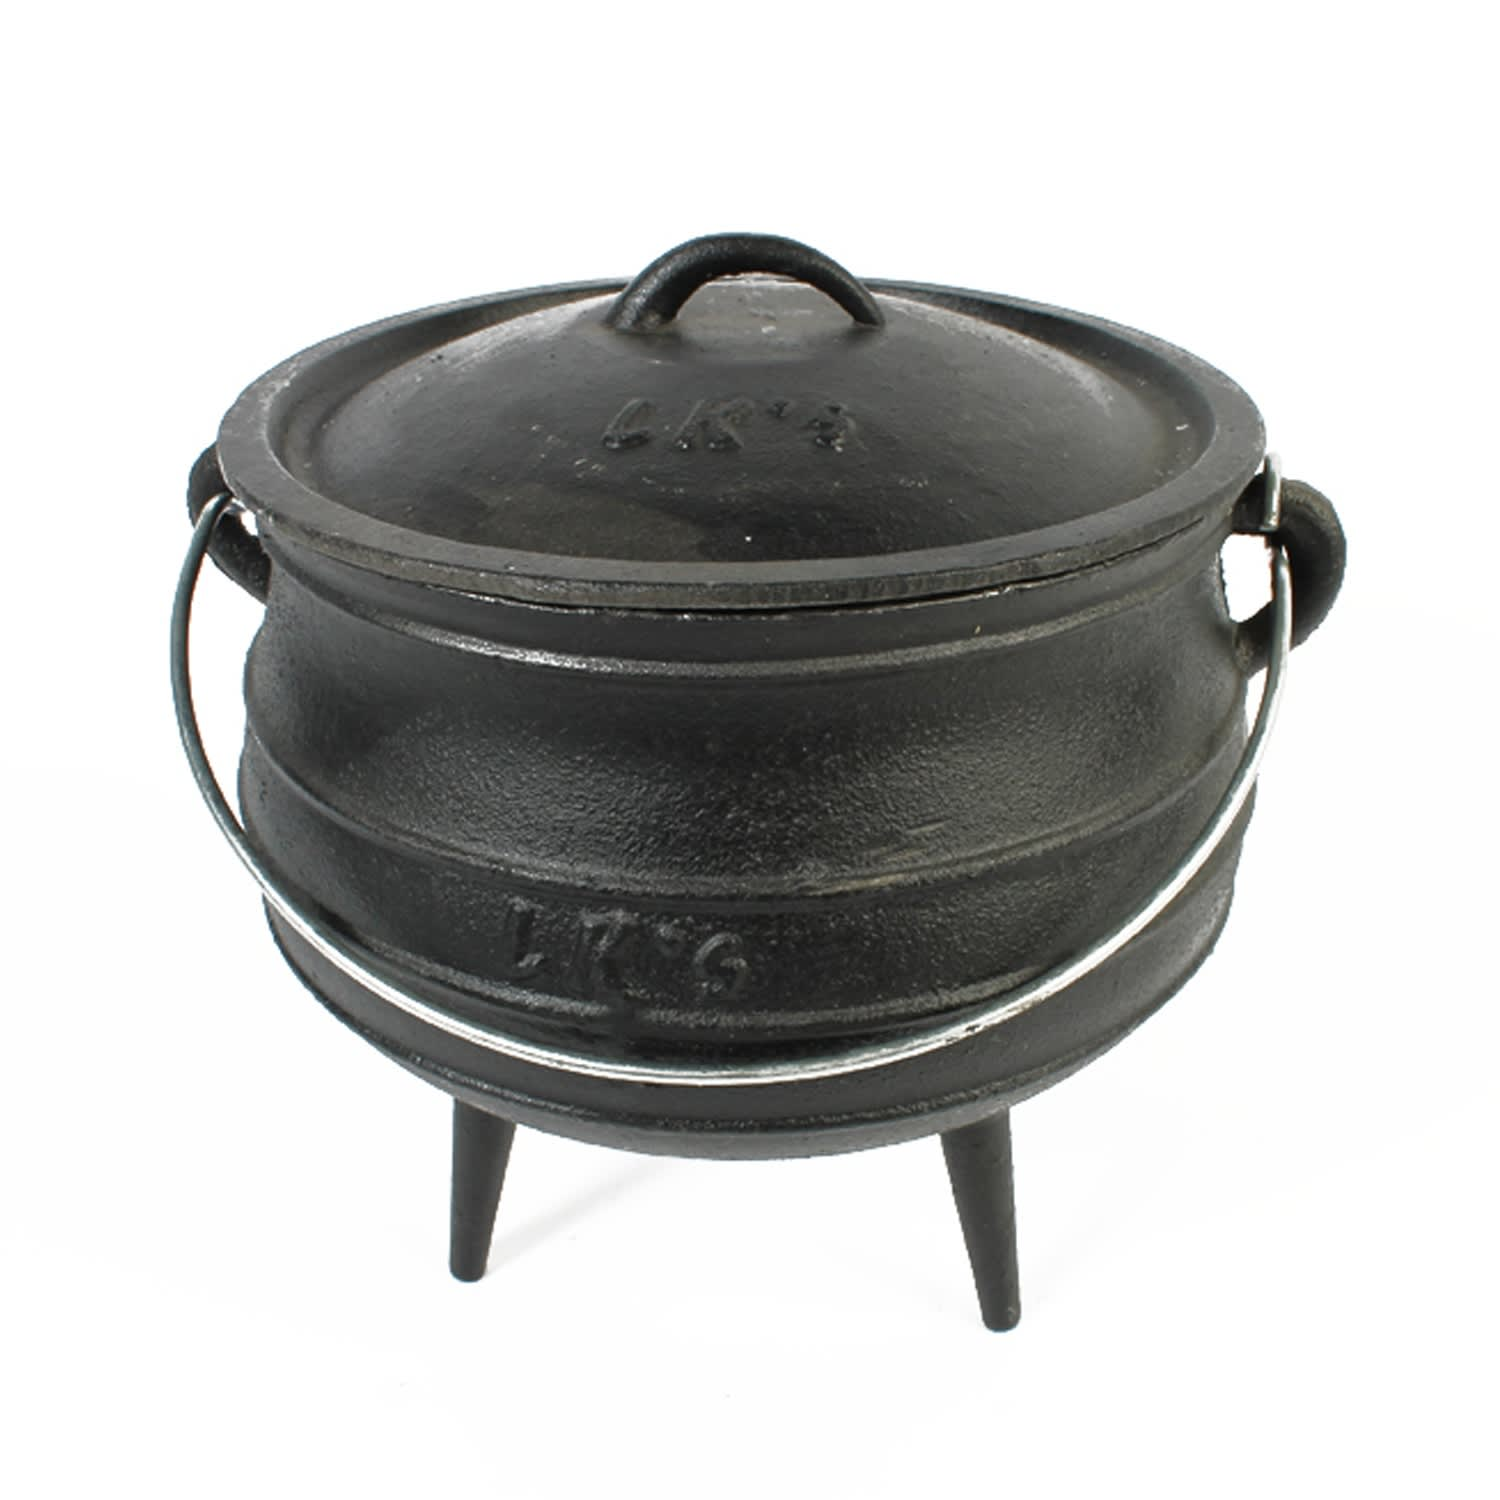 LK's Cast Iron 3 Leg Pot - 1/4